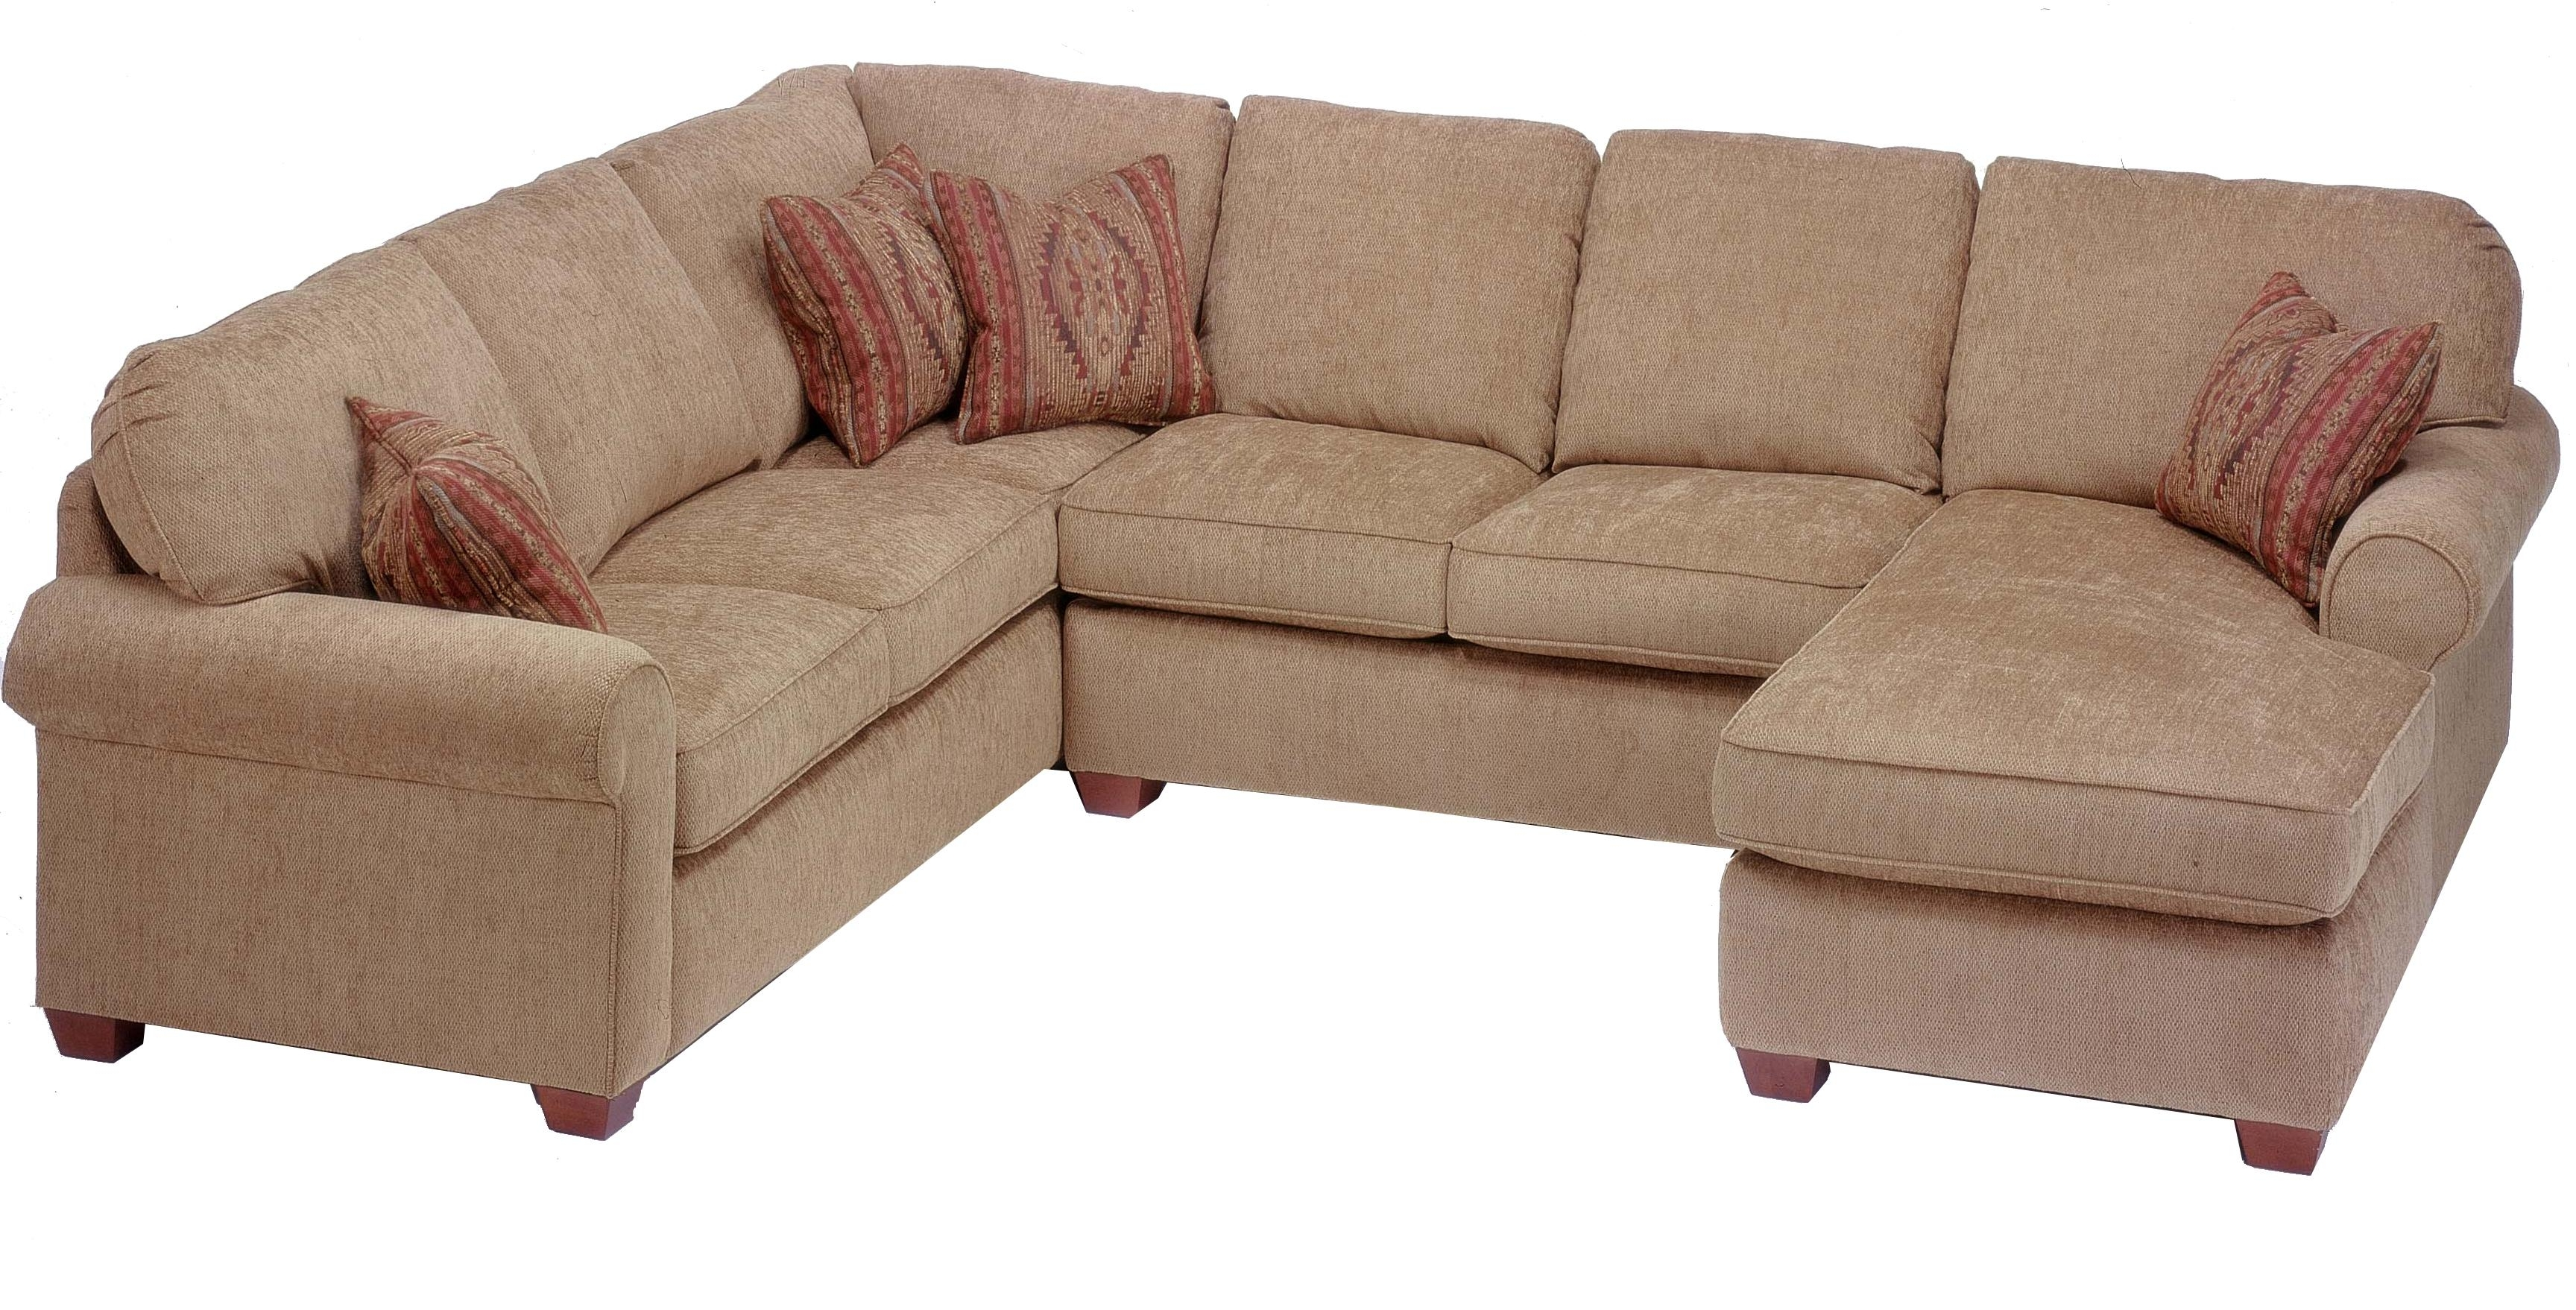 Most Recently Released Flexsteel Thornton 3 Piece Sectional With Chaise – Ahfa – Sofa Inside Sectional Sofas At Buffalo Ny (View 11 of 20)